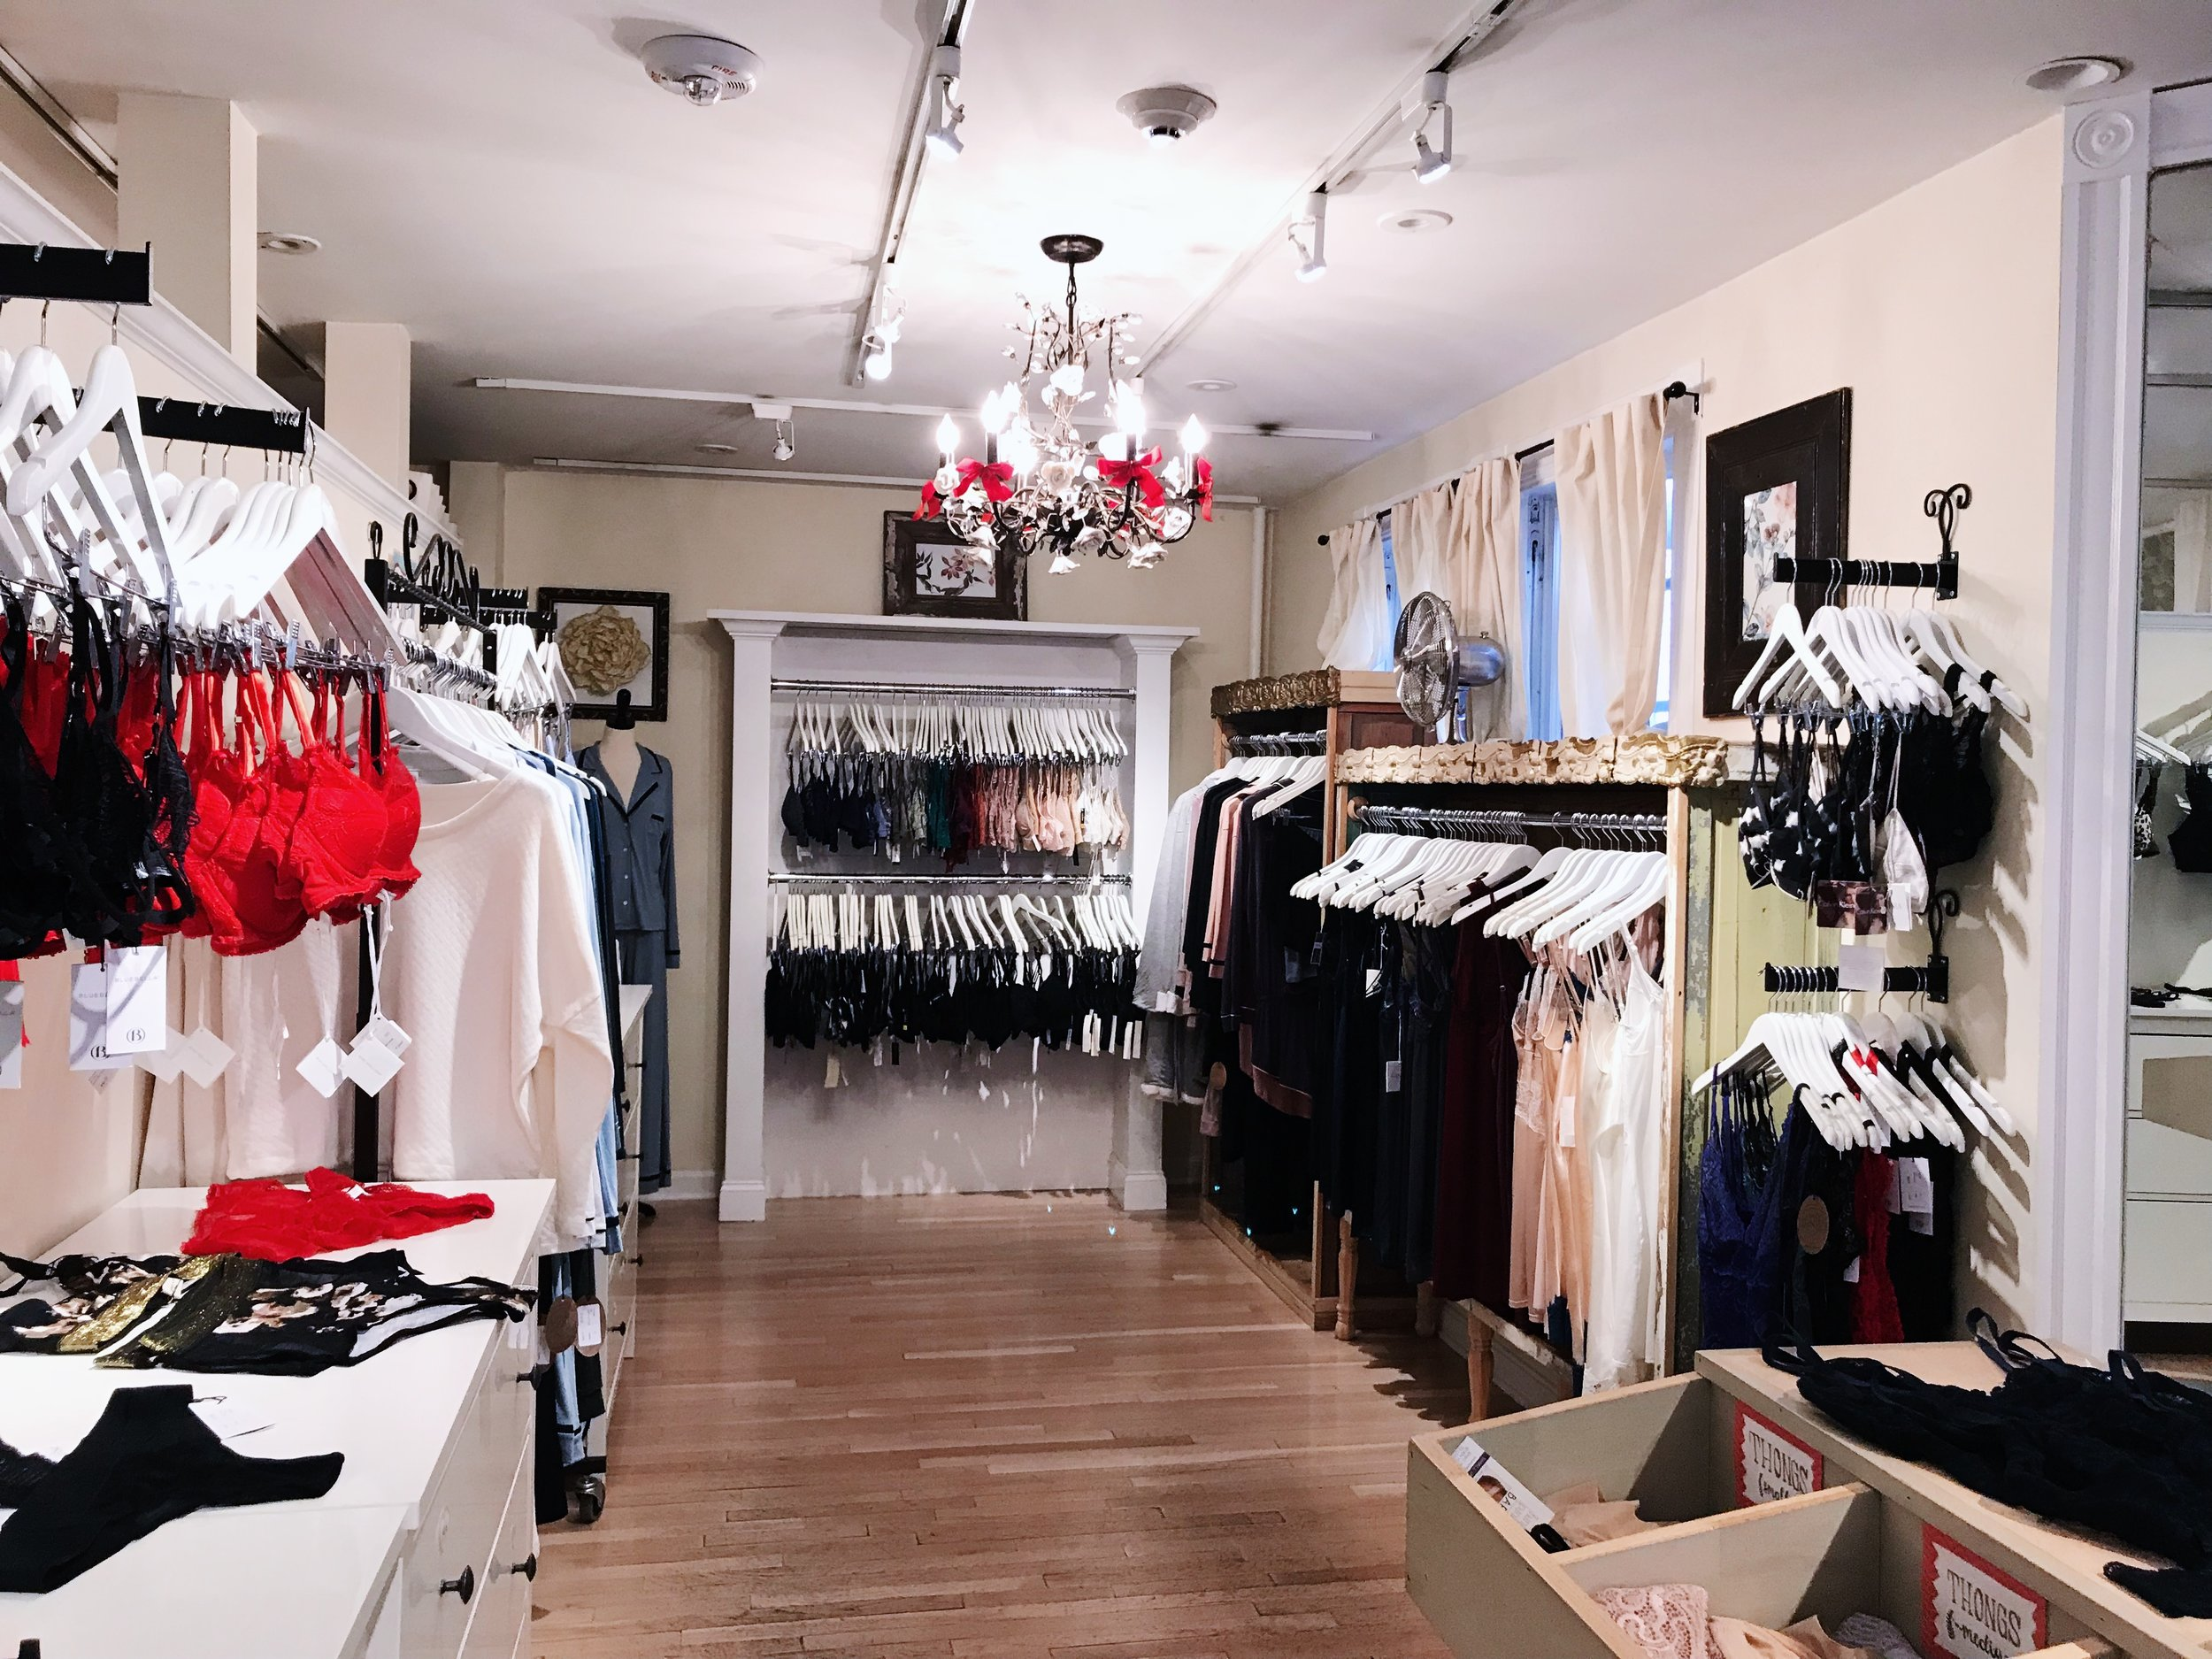 Forty Winks Lingerie Boutiqe Located in Boston Area.JPG